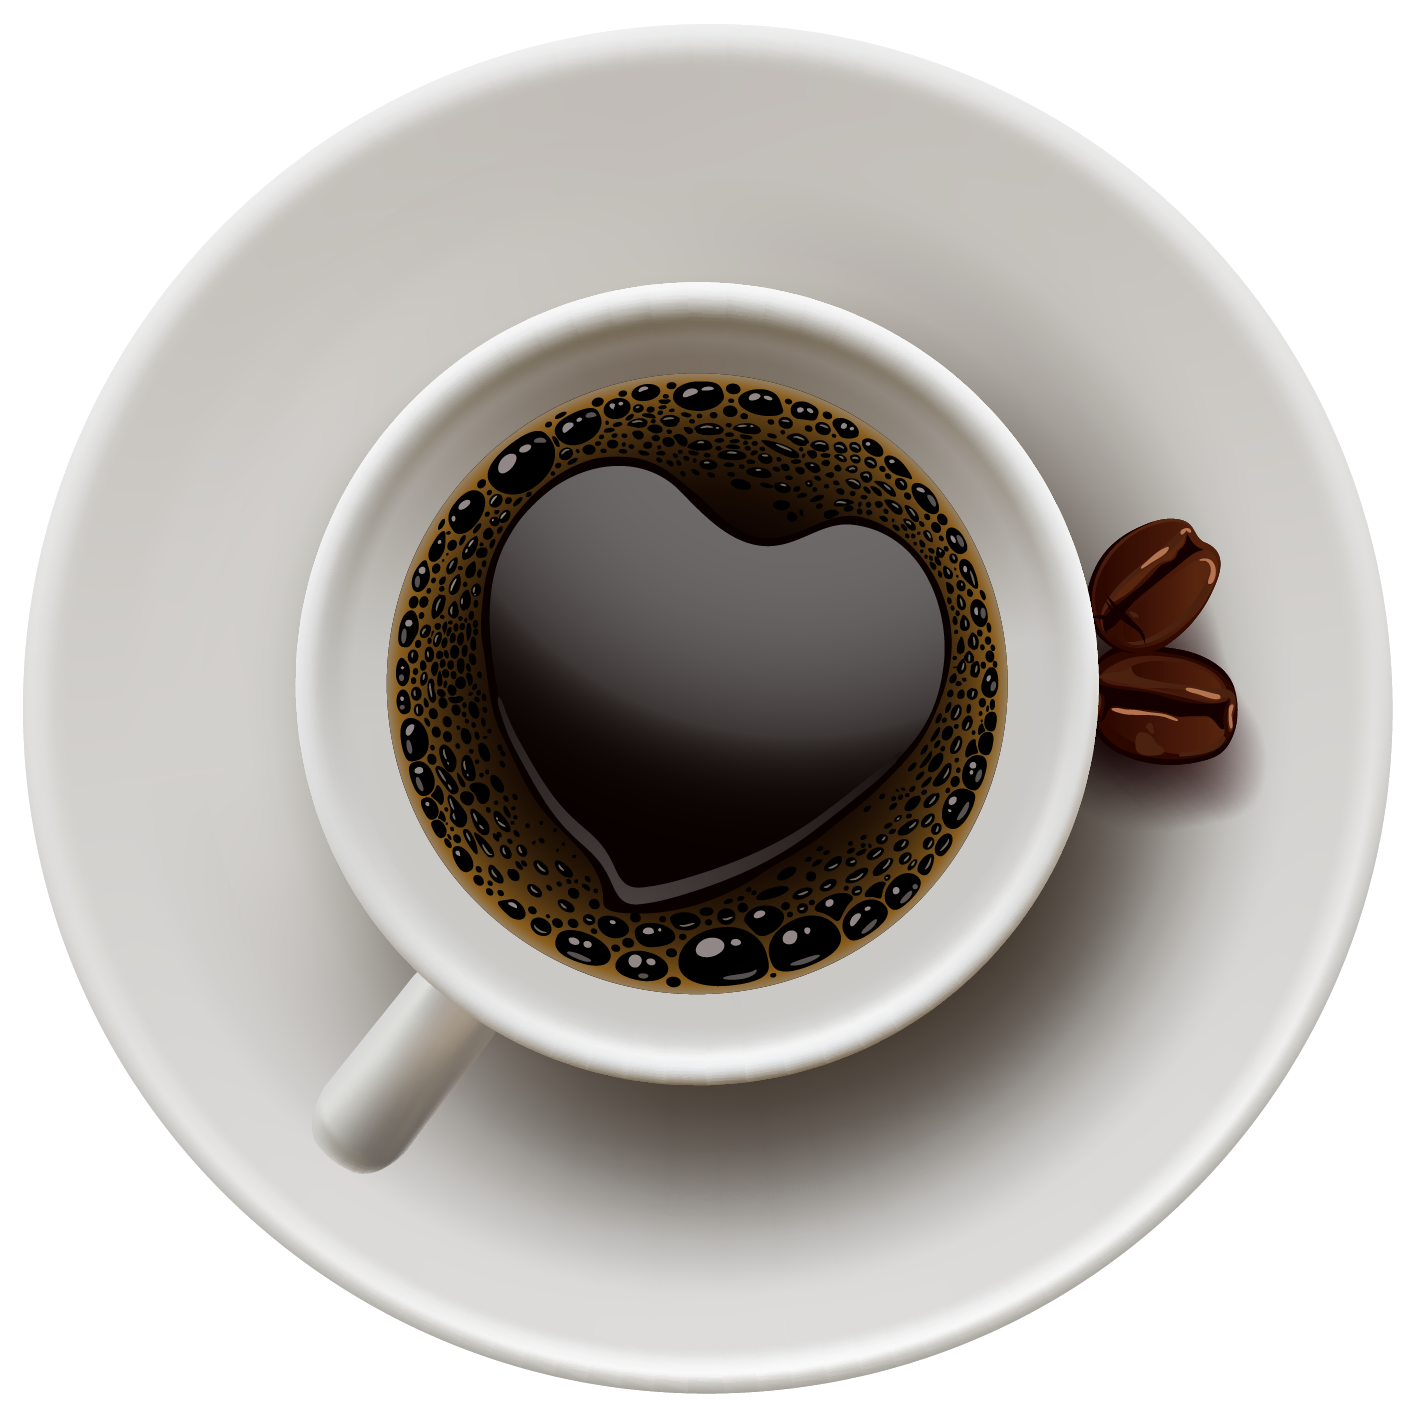 Drinks clipart vector. Coffee cup with heart